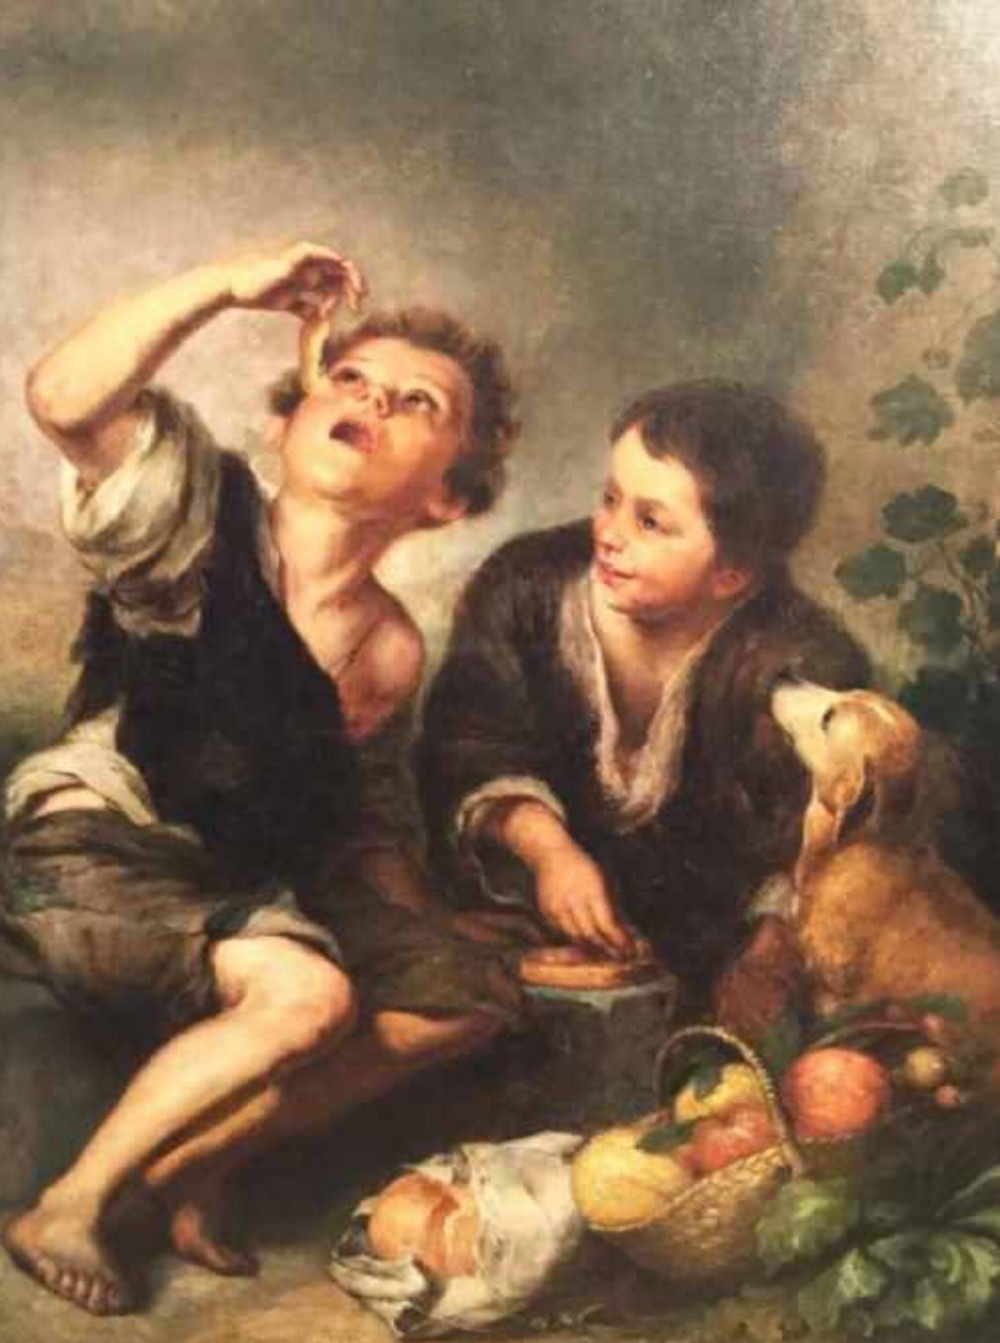 the pie eaters after bartolome esteban murillo 16171682 european school oil portrait painting antique art